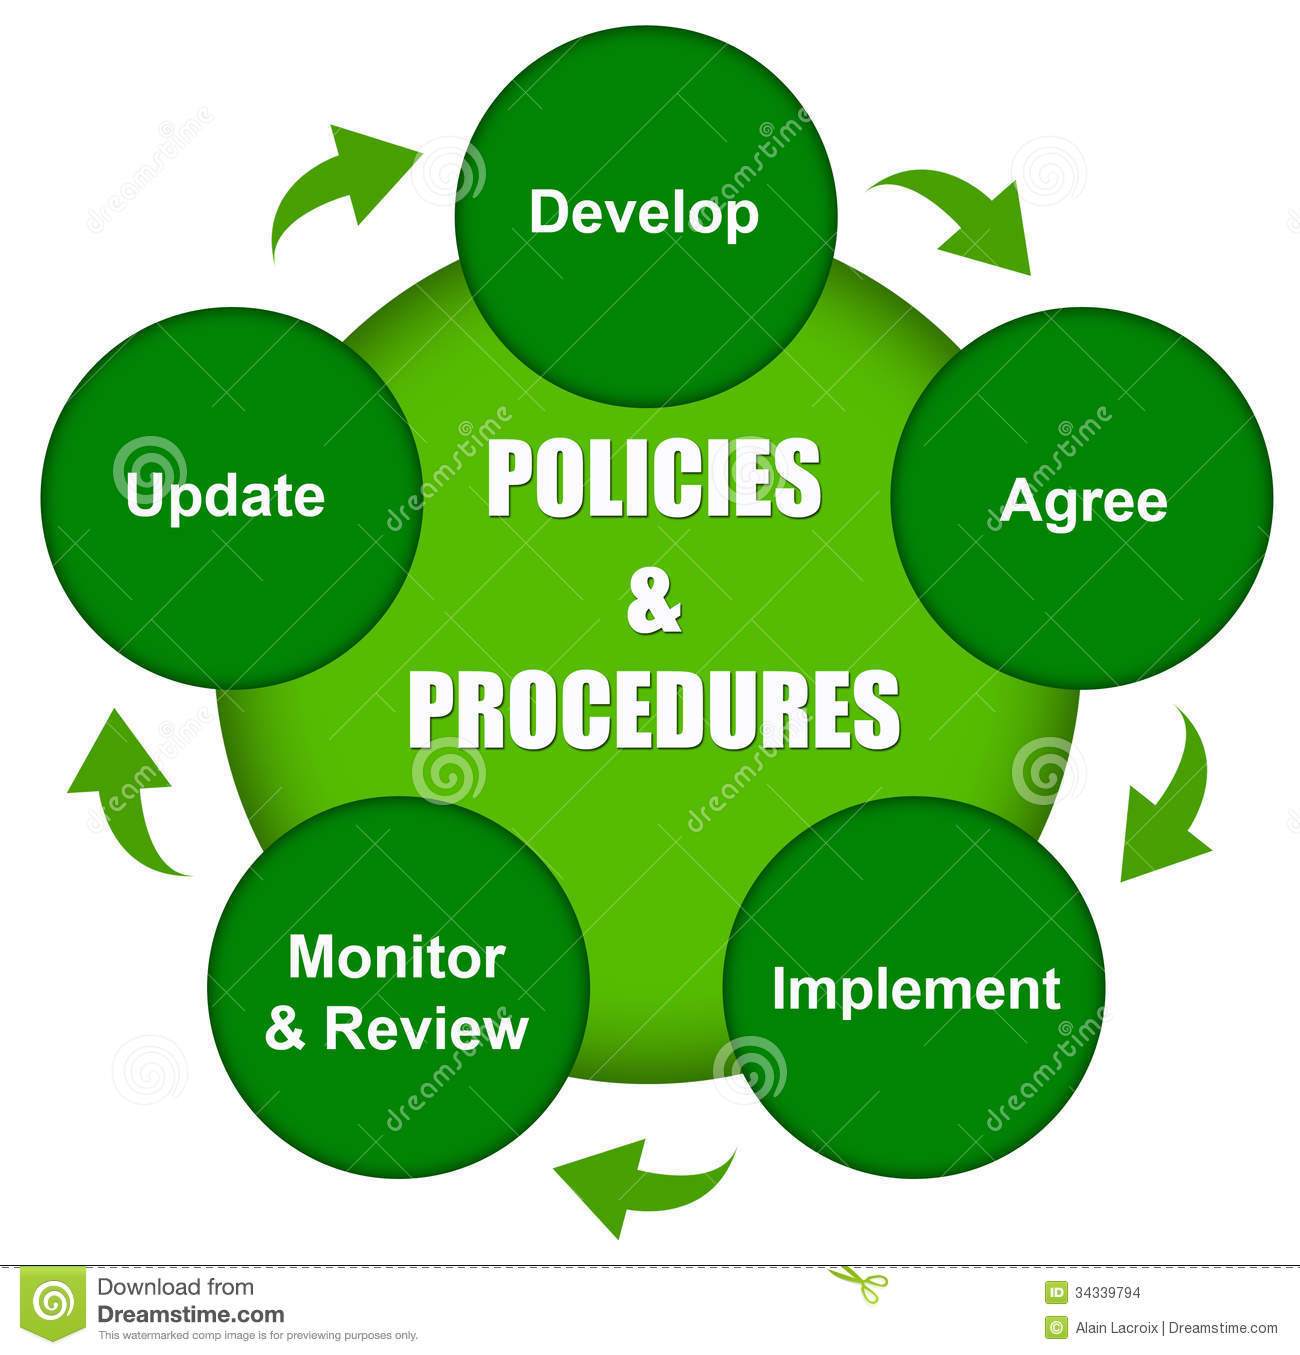 Diagram explaining how policies and procedures come about.